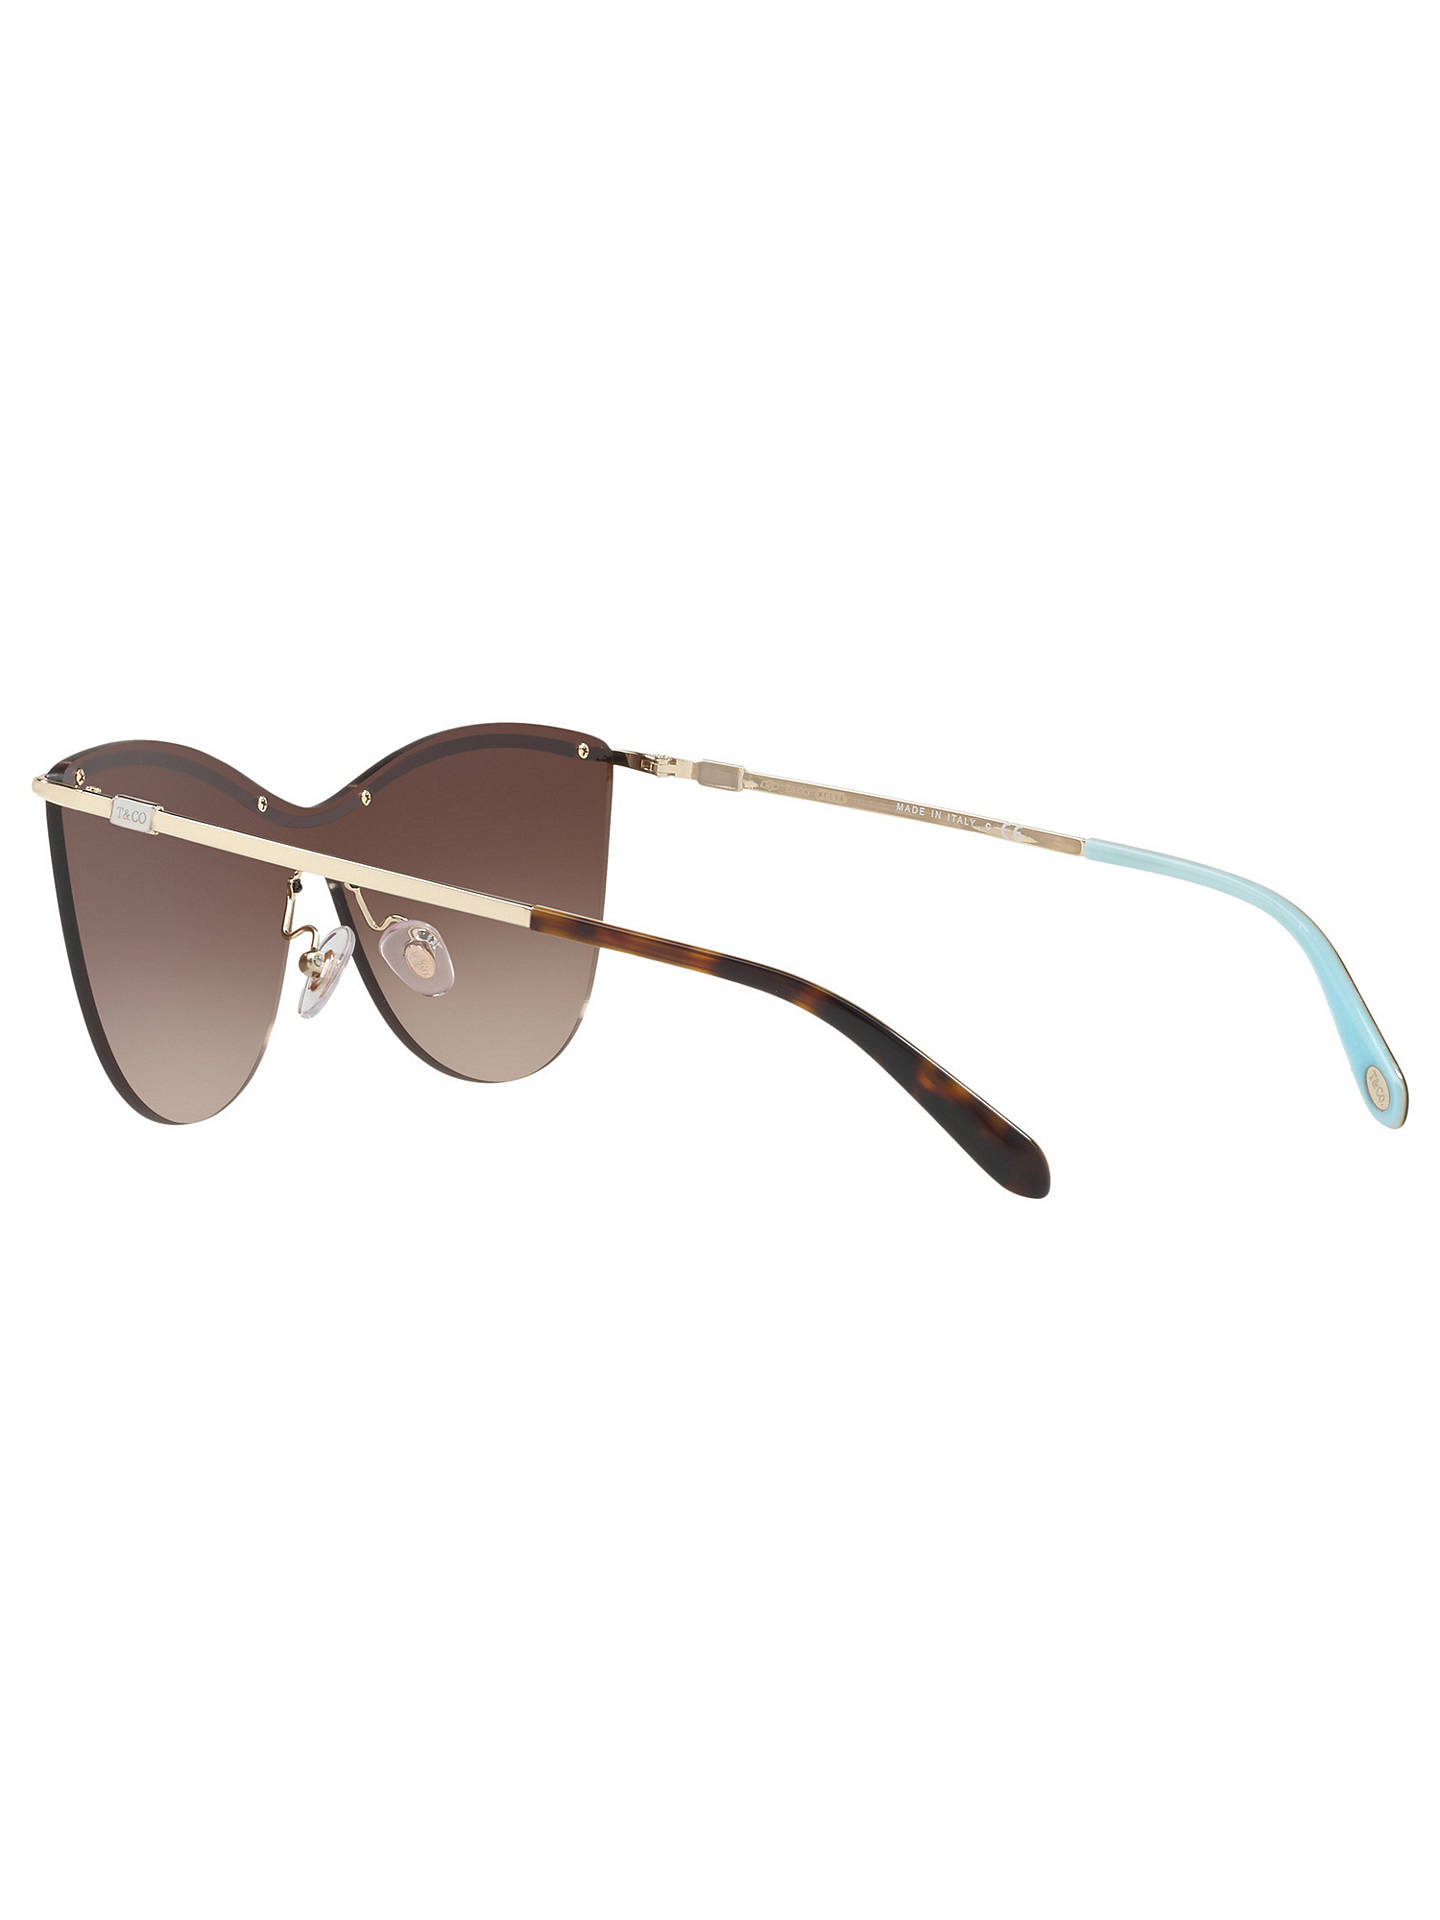 Buy Tiffany & Co TF3058 Cat's Eye Sunglasses, Gold/Brown Gradient Online at johnlewis.com